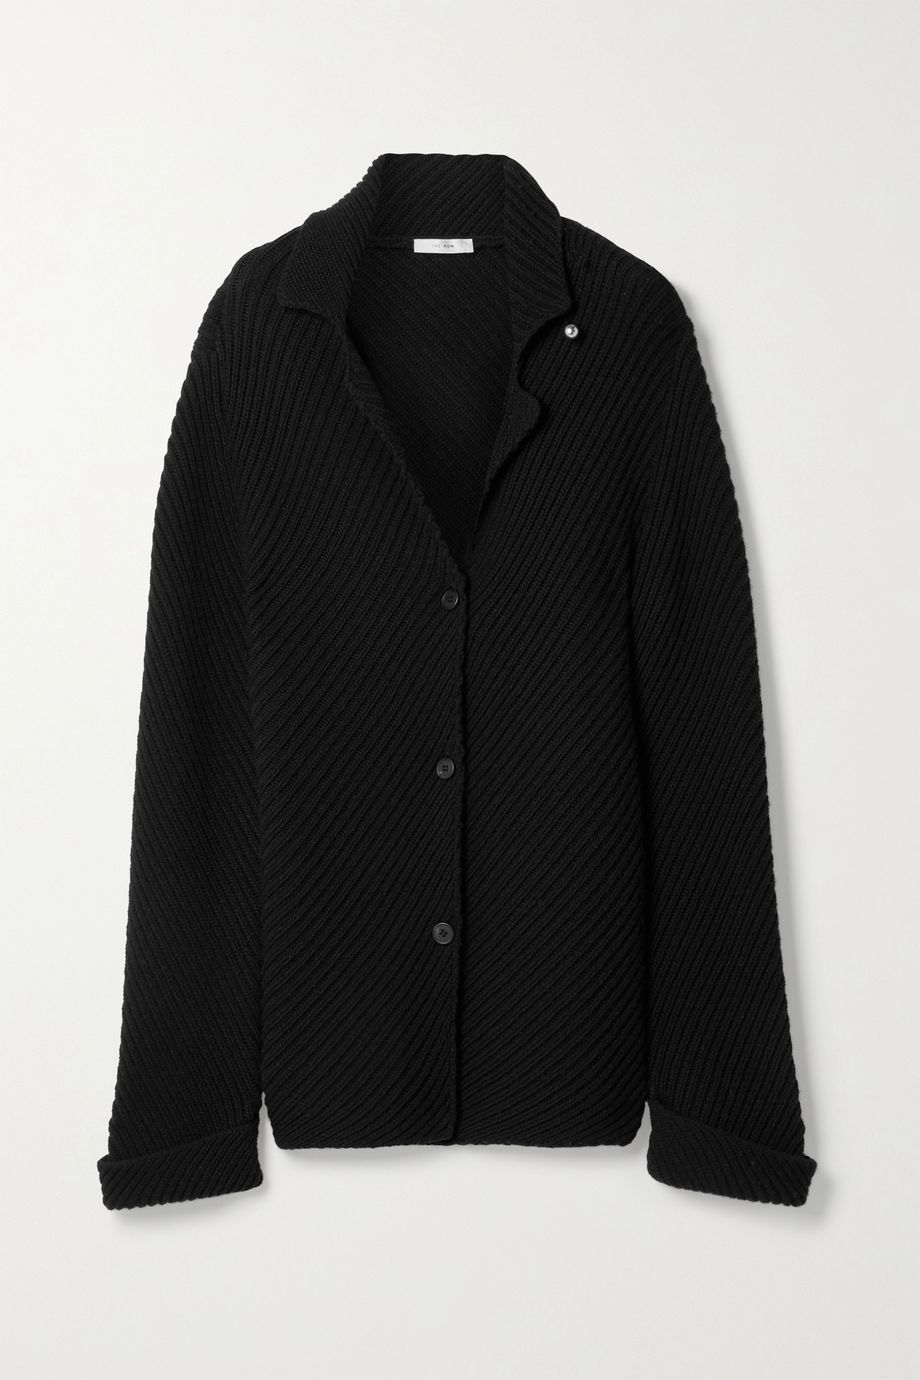 The Row Abely embellished ribbed wool cardigan